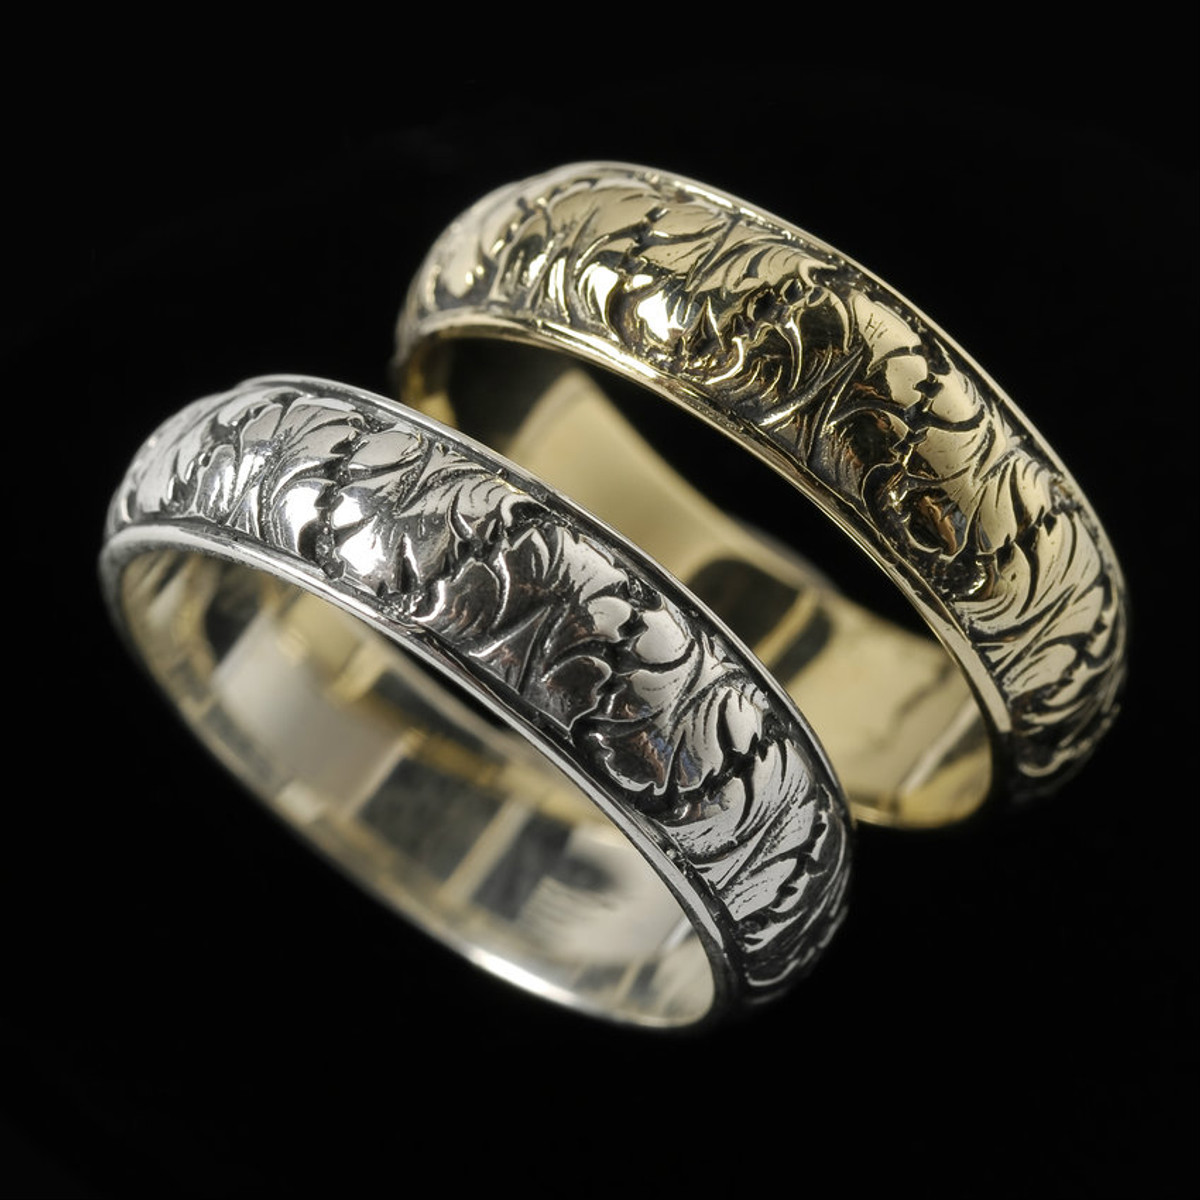 fig leaf wedding ring bands in silver and gold handmade by bowman originals sarasota - Leaf Wedding Ring